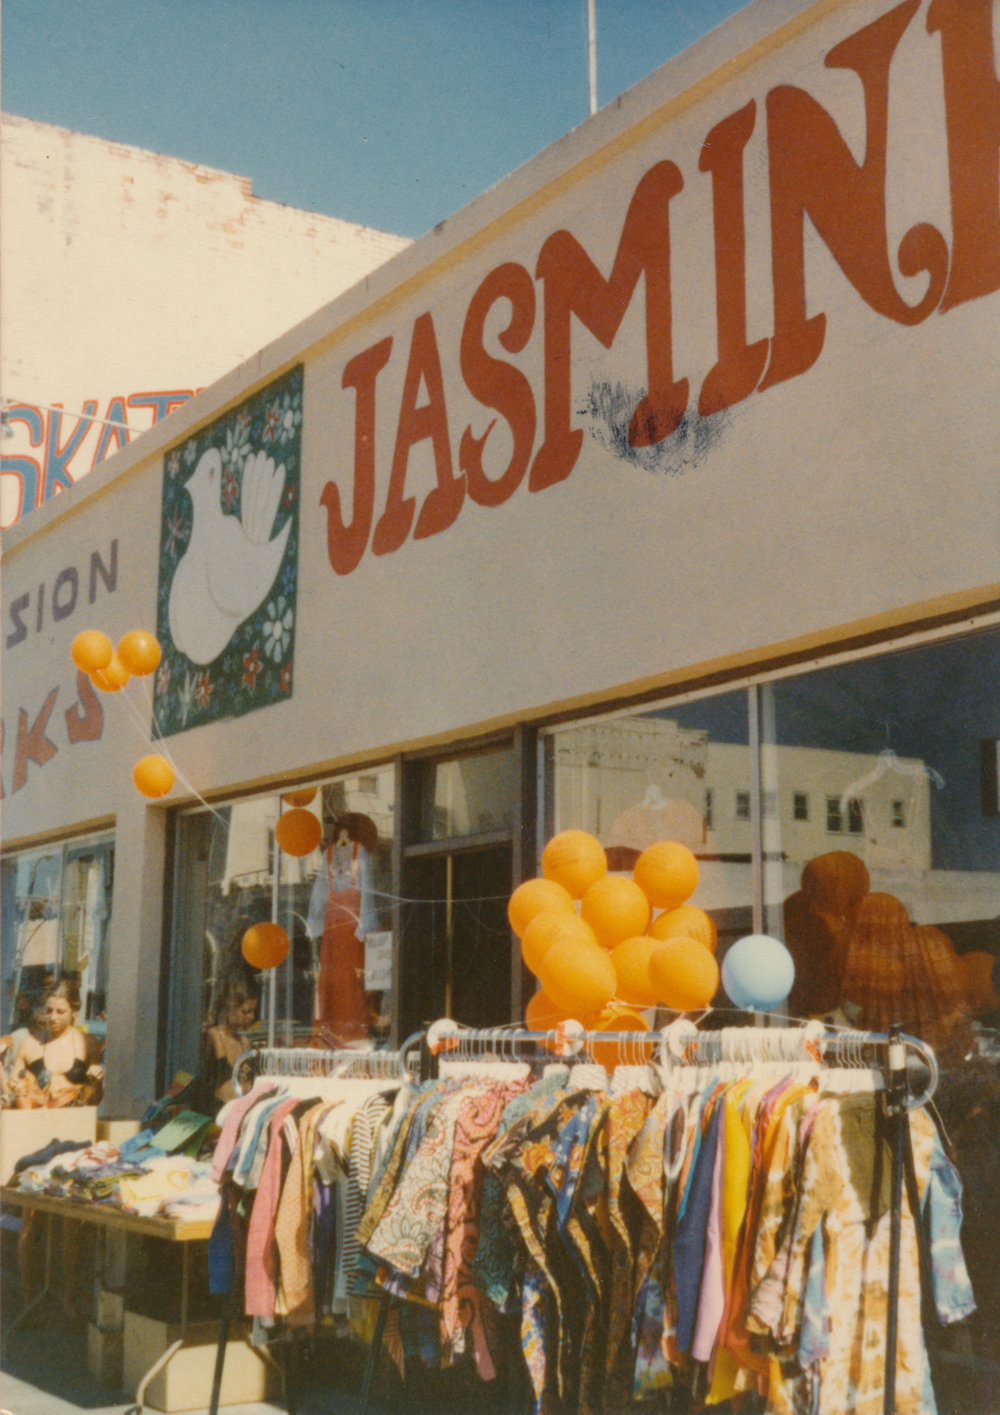 1979 - KRISHAN OPENS A SHOP ON WINDWARD AVE. IN VENICE BEACH. THE SHOP AND LABEL KNOWN AS 'JASMINE' FEATURE A WIDE RANGE OF TRADITIONALLY INDIAN FABRICS, CUTS, AND PRINTS.